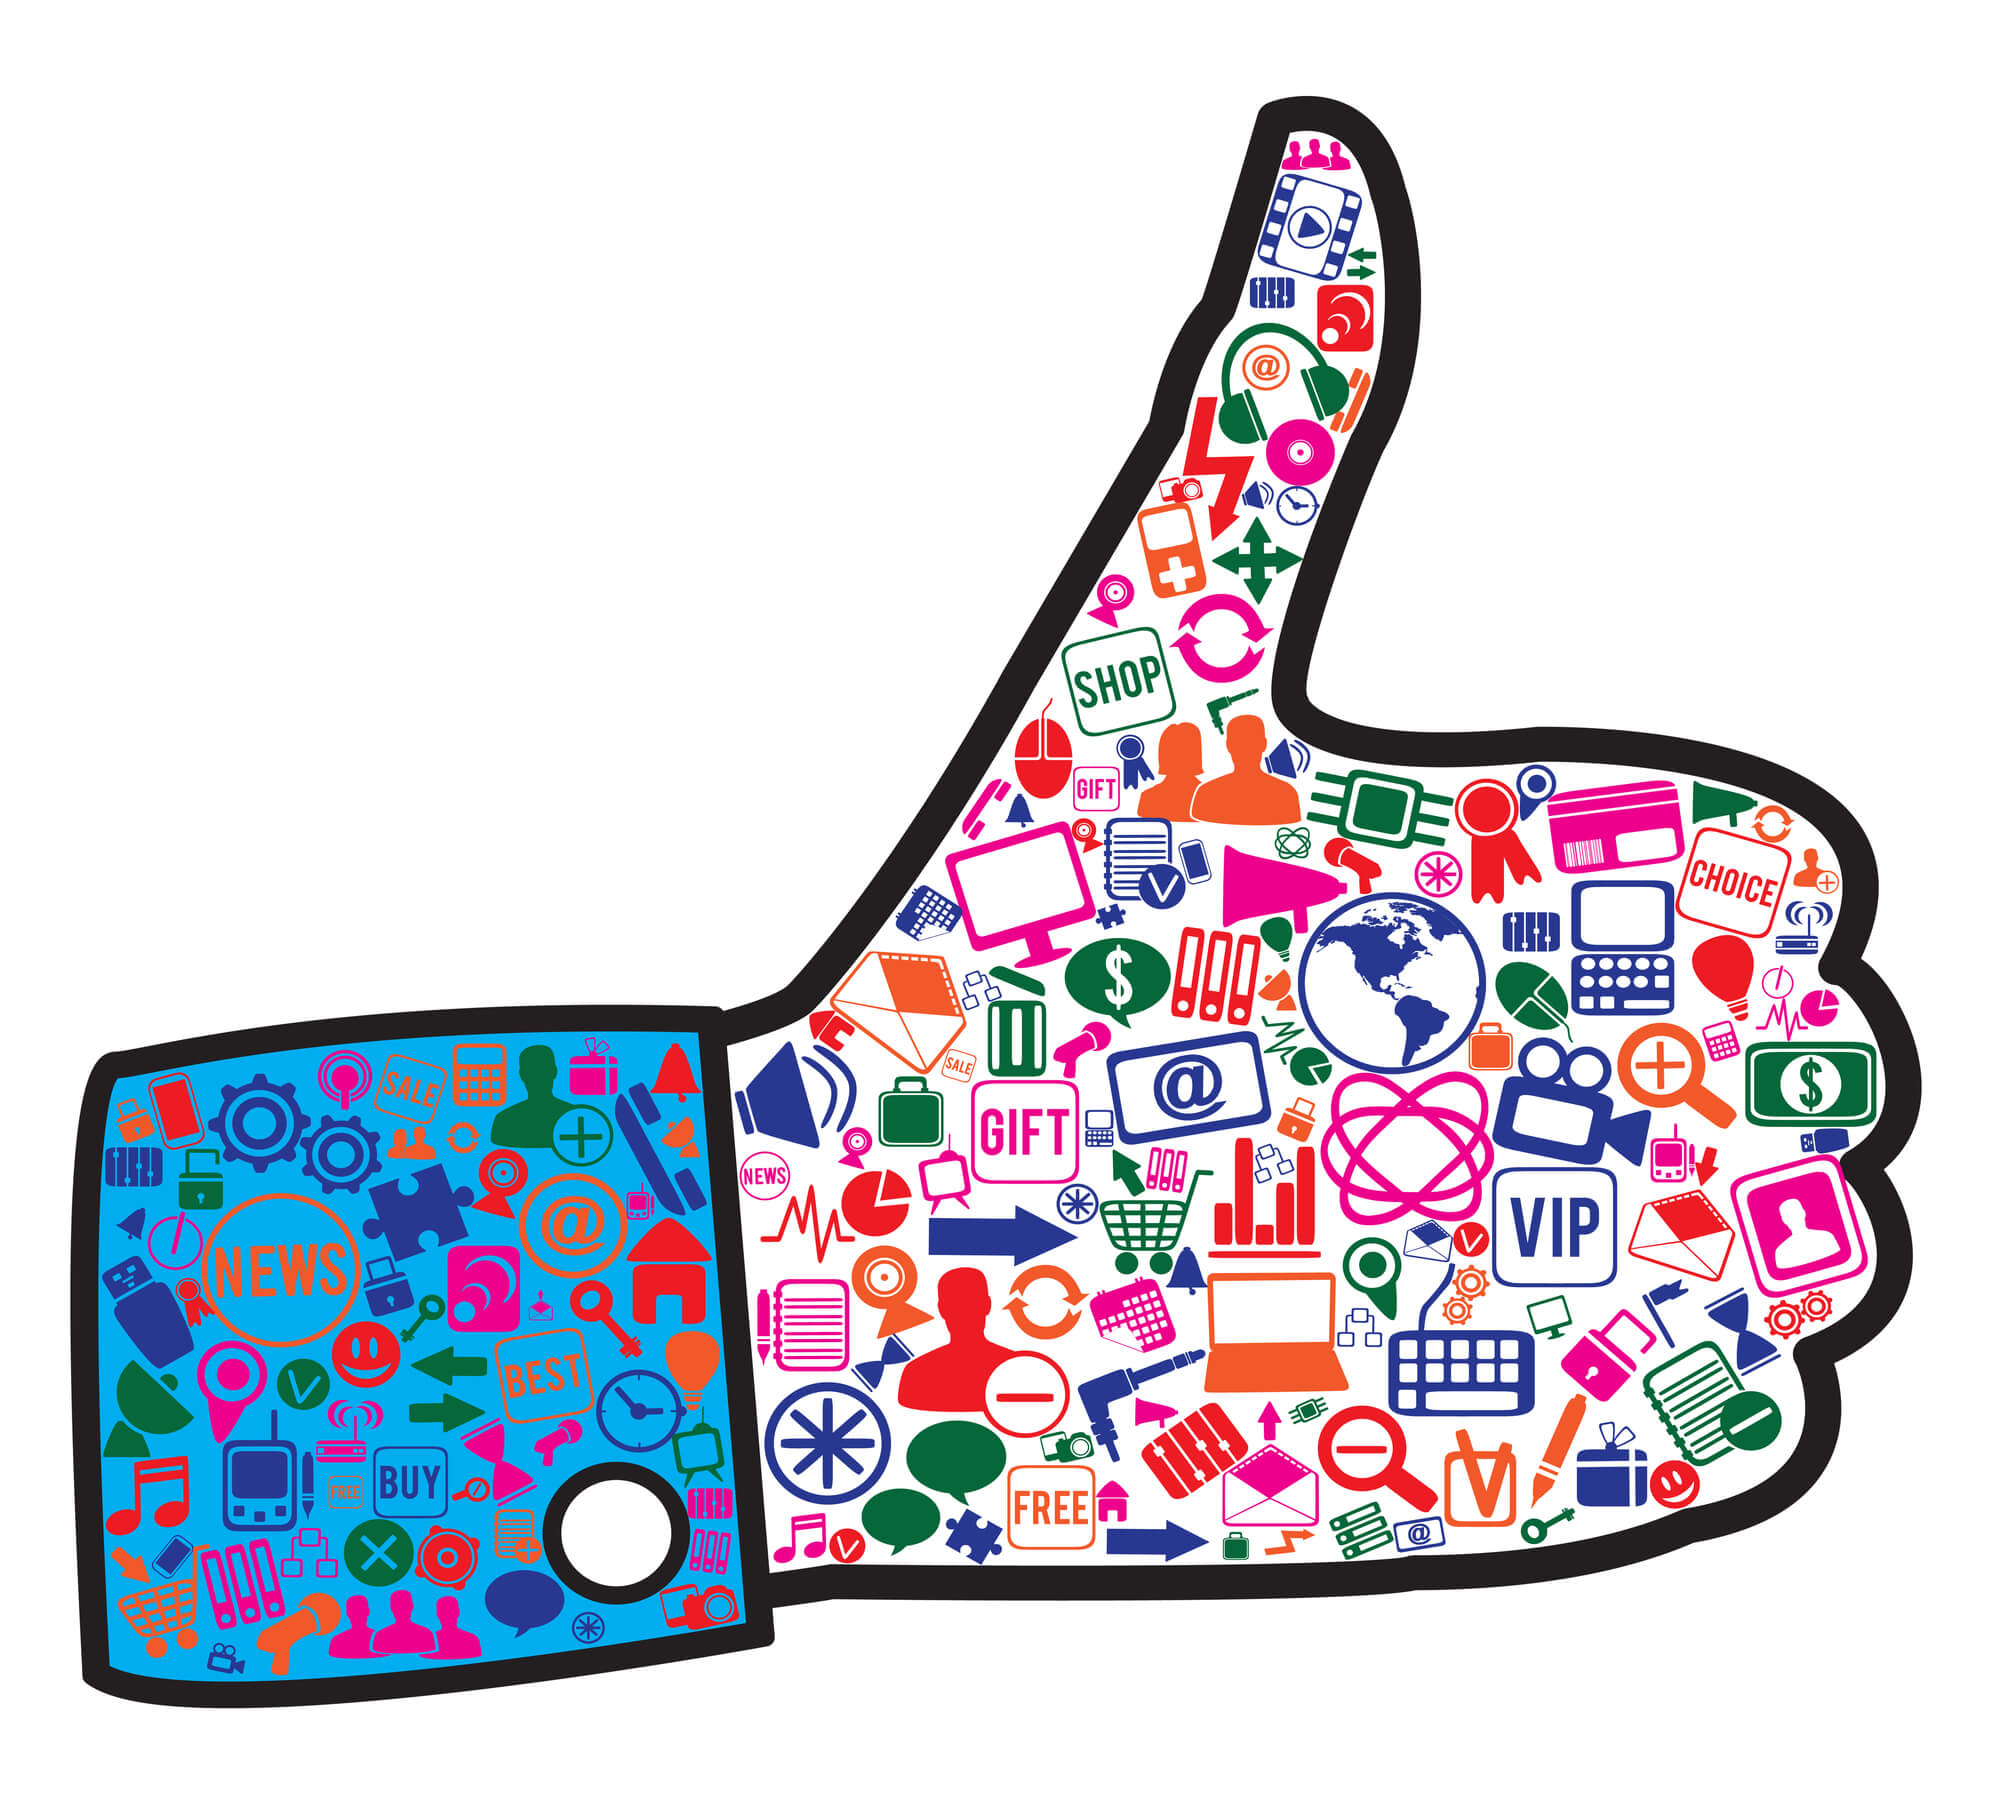 thumbs-up-with-social-media-icons-inside